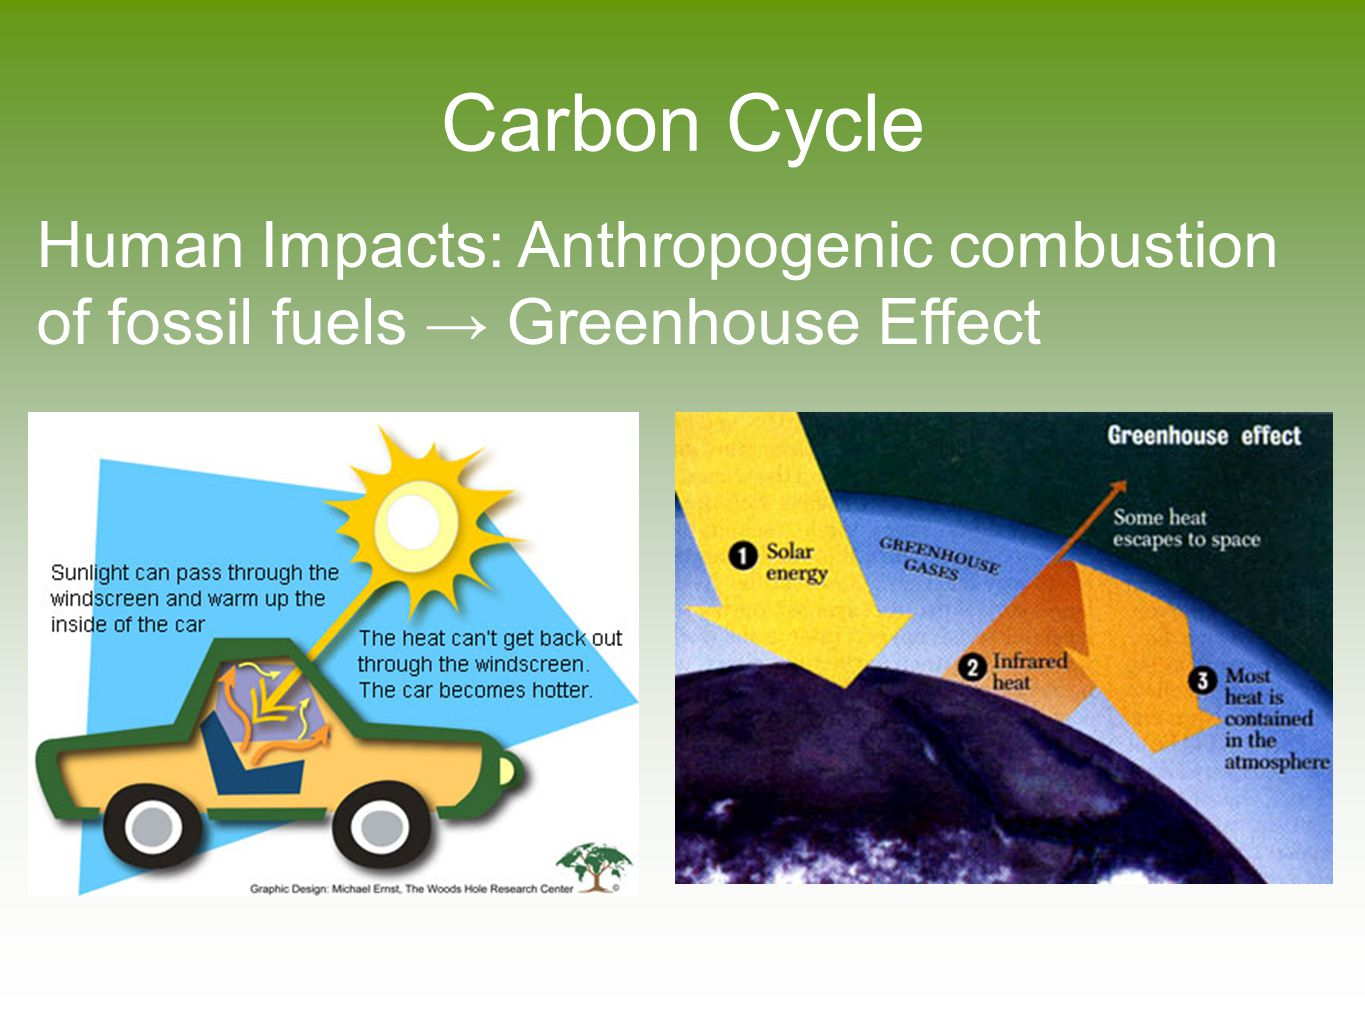 Carbon Cycle Human Impacts: Anthropogenic combustion of fossil fuels → Greenhouse Effect